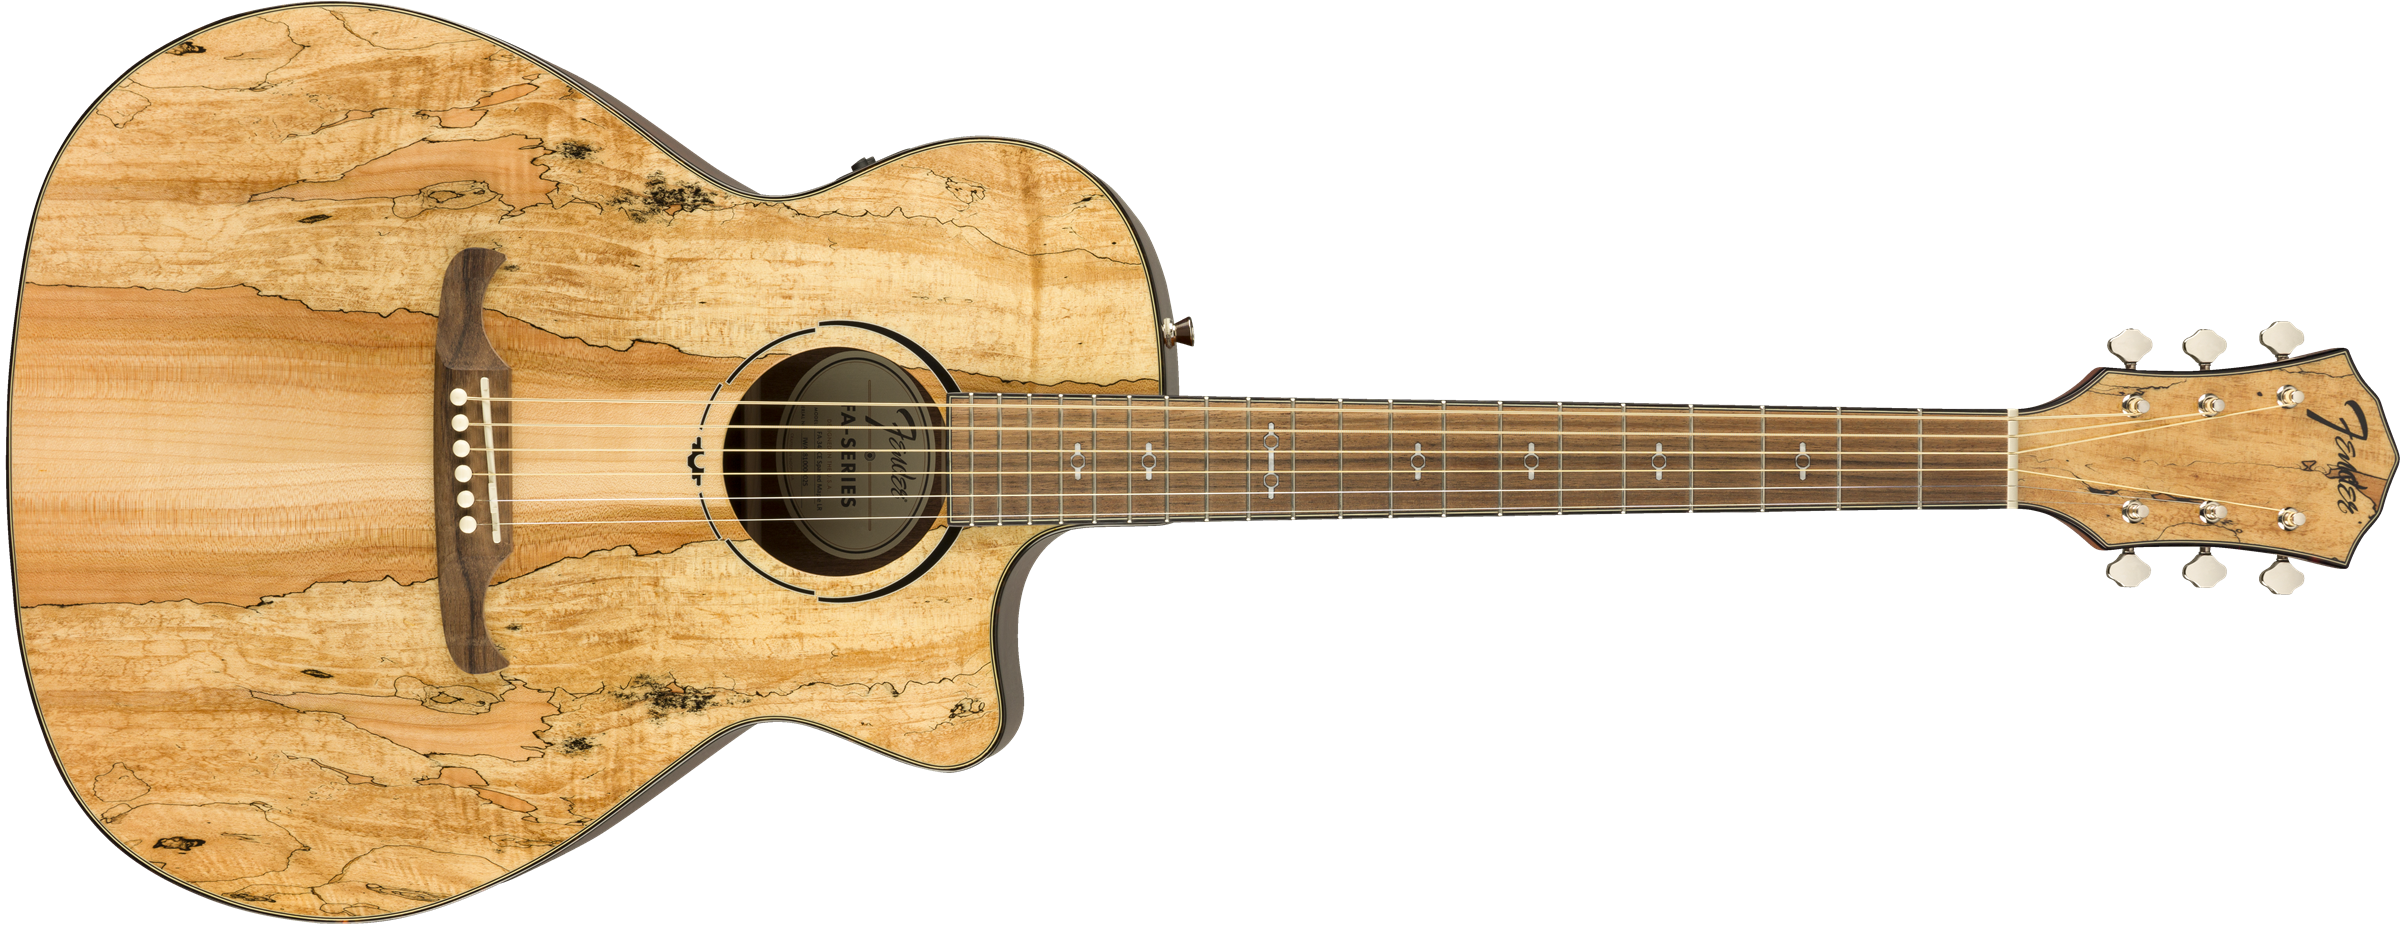 Fender 2019 LIMITED EDITION FA-345CE AUDITORIUM, SPALTED MAPLE TOP